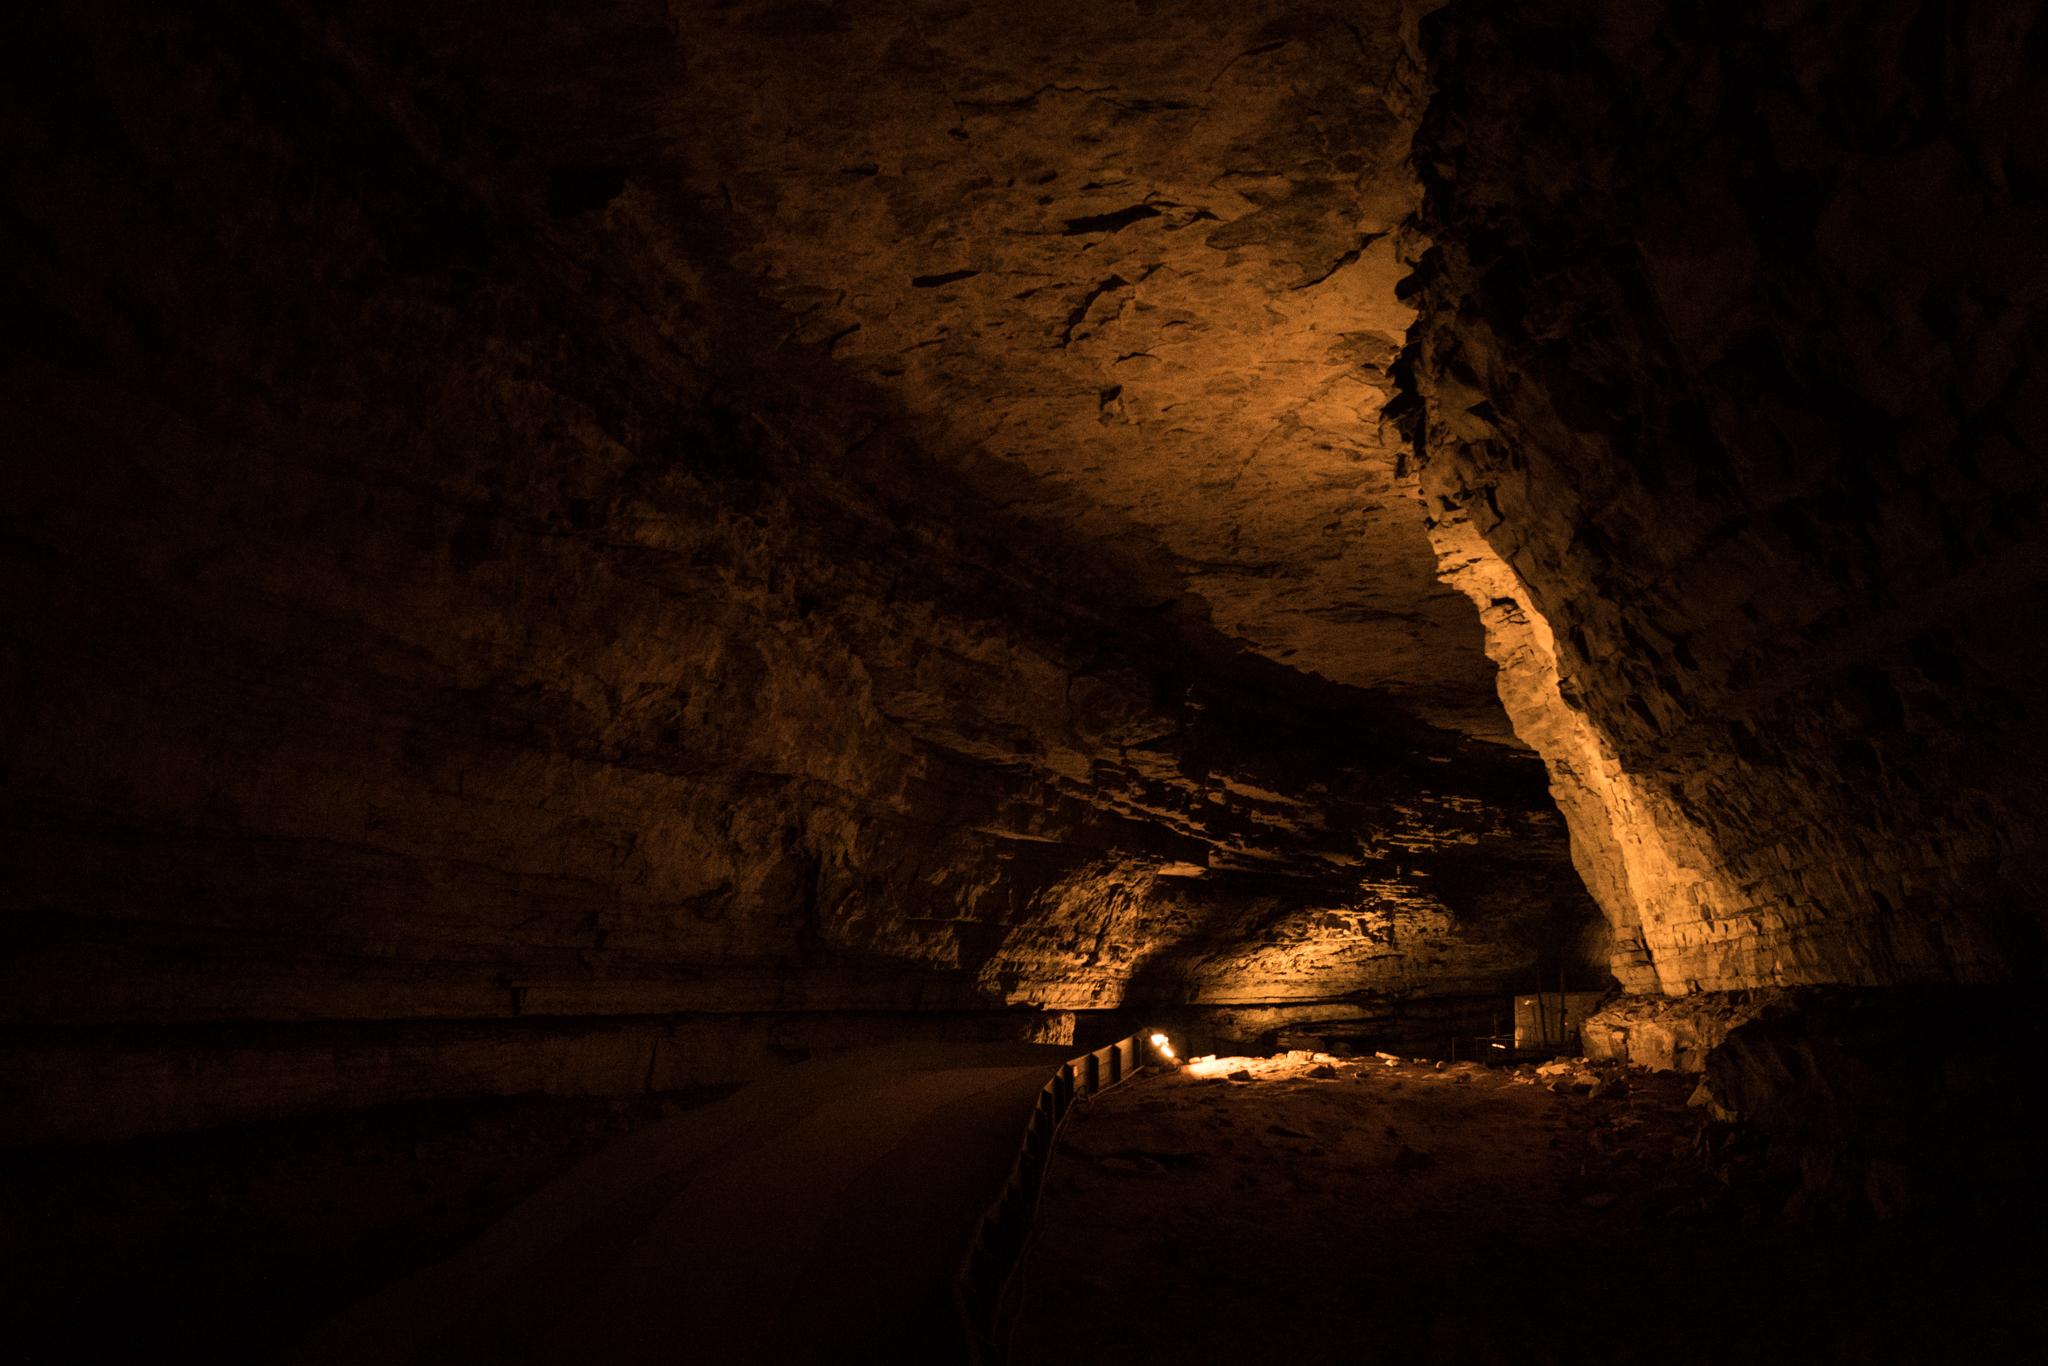 MAMOTH CAVE NATIONAL PARK